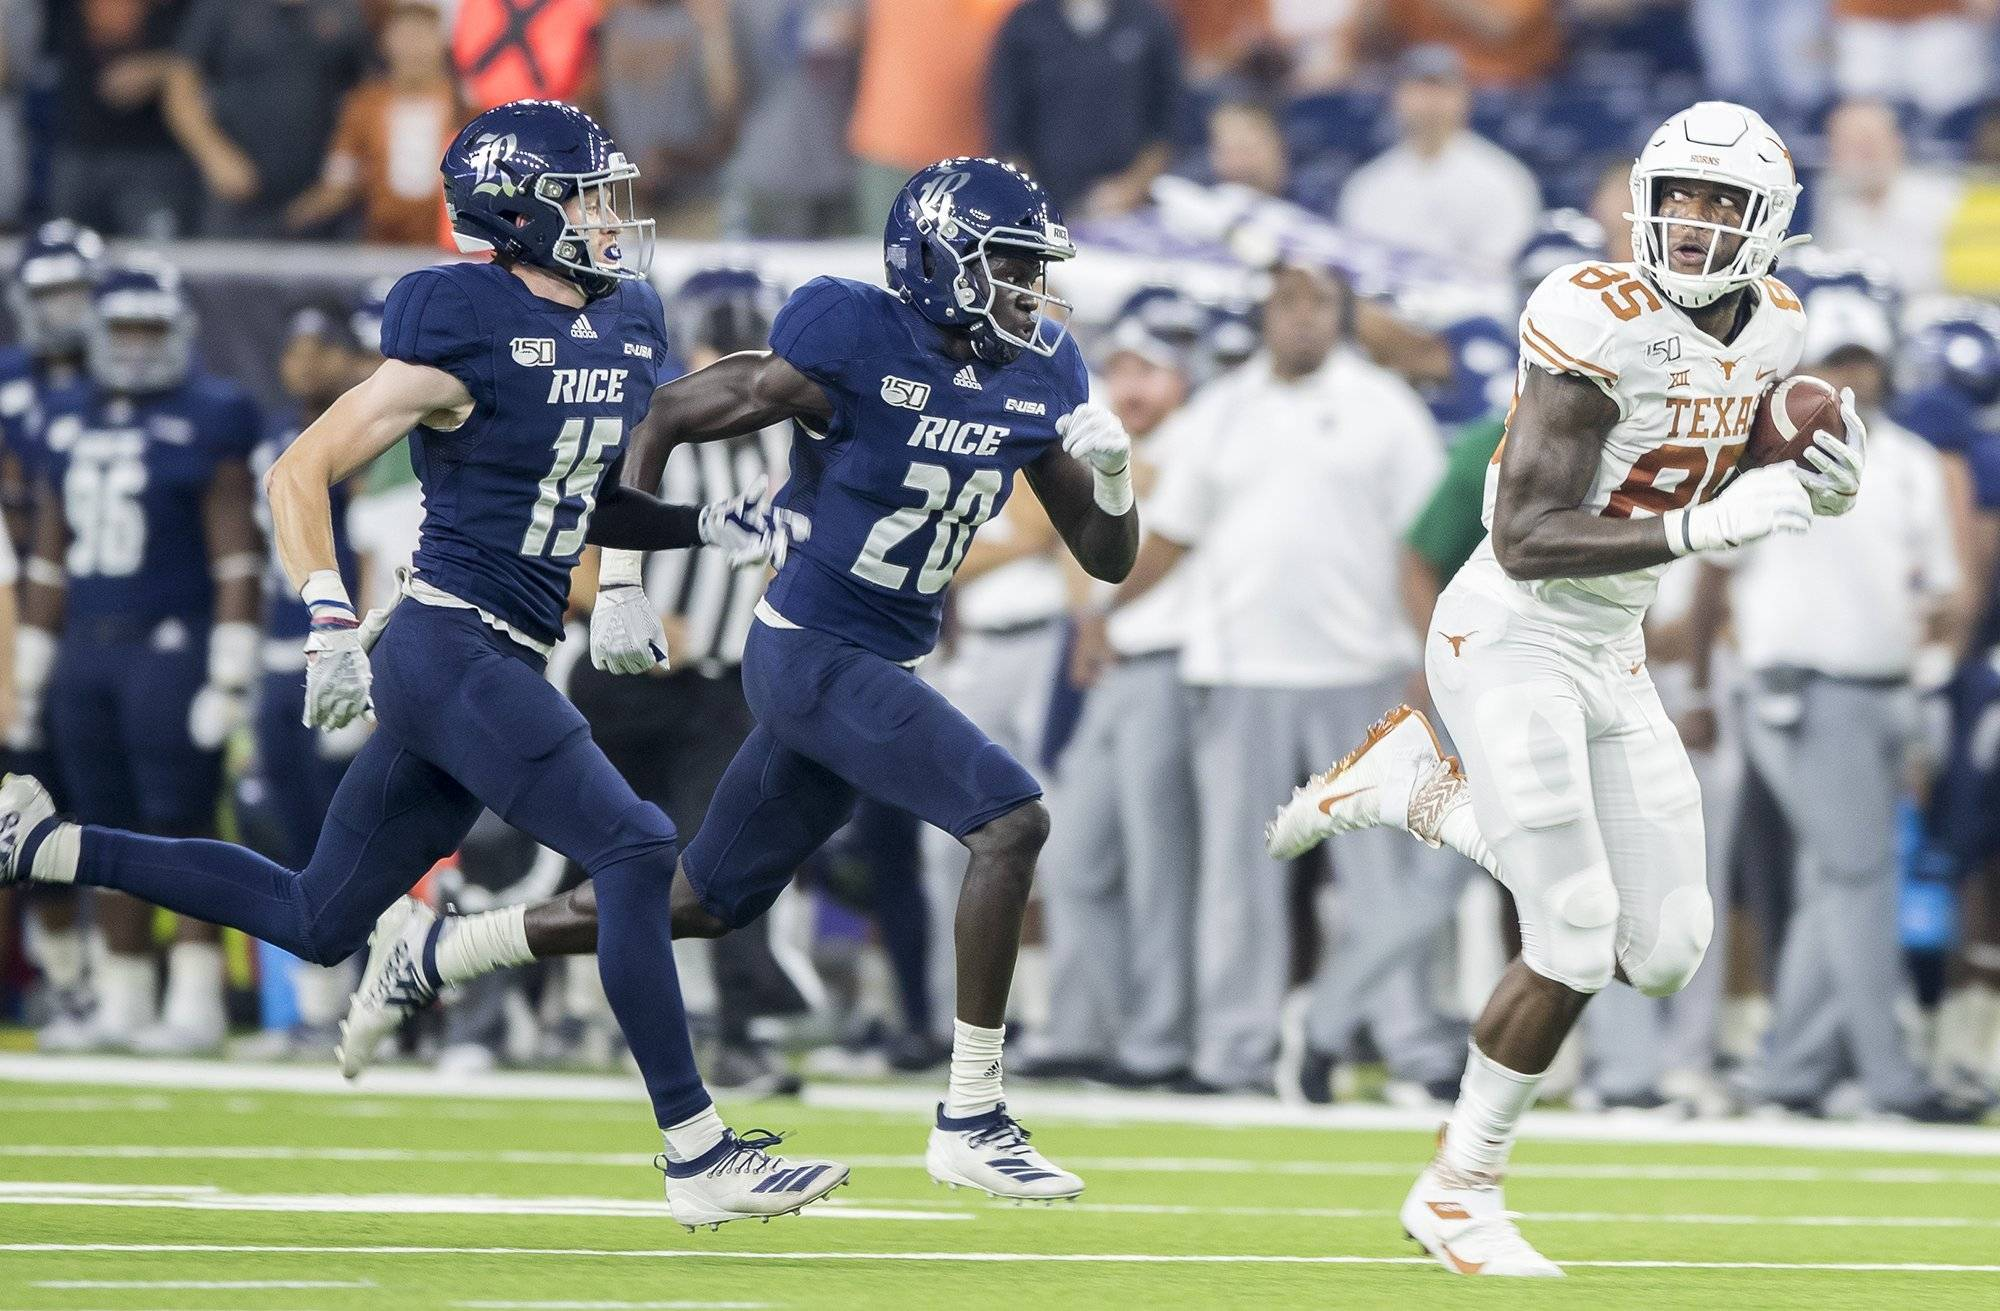 It's over: No. 12 Texas gets back on winning track in dominating fashion, 48-13 over Rice